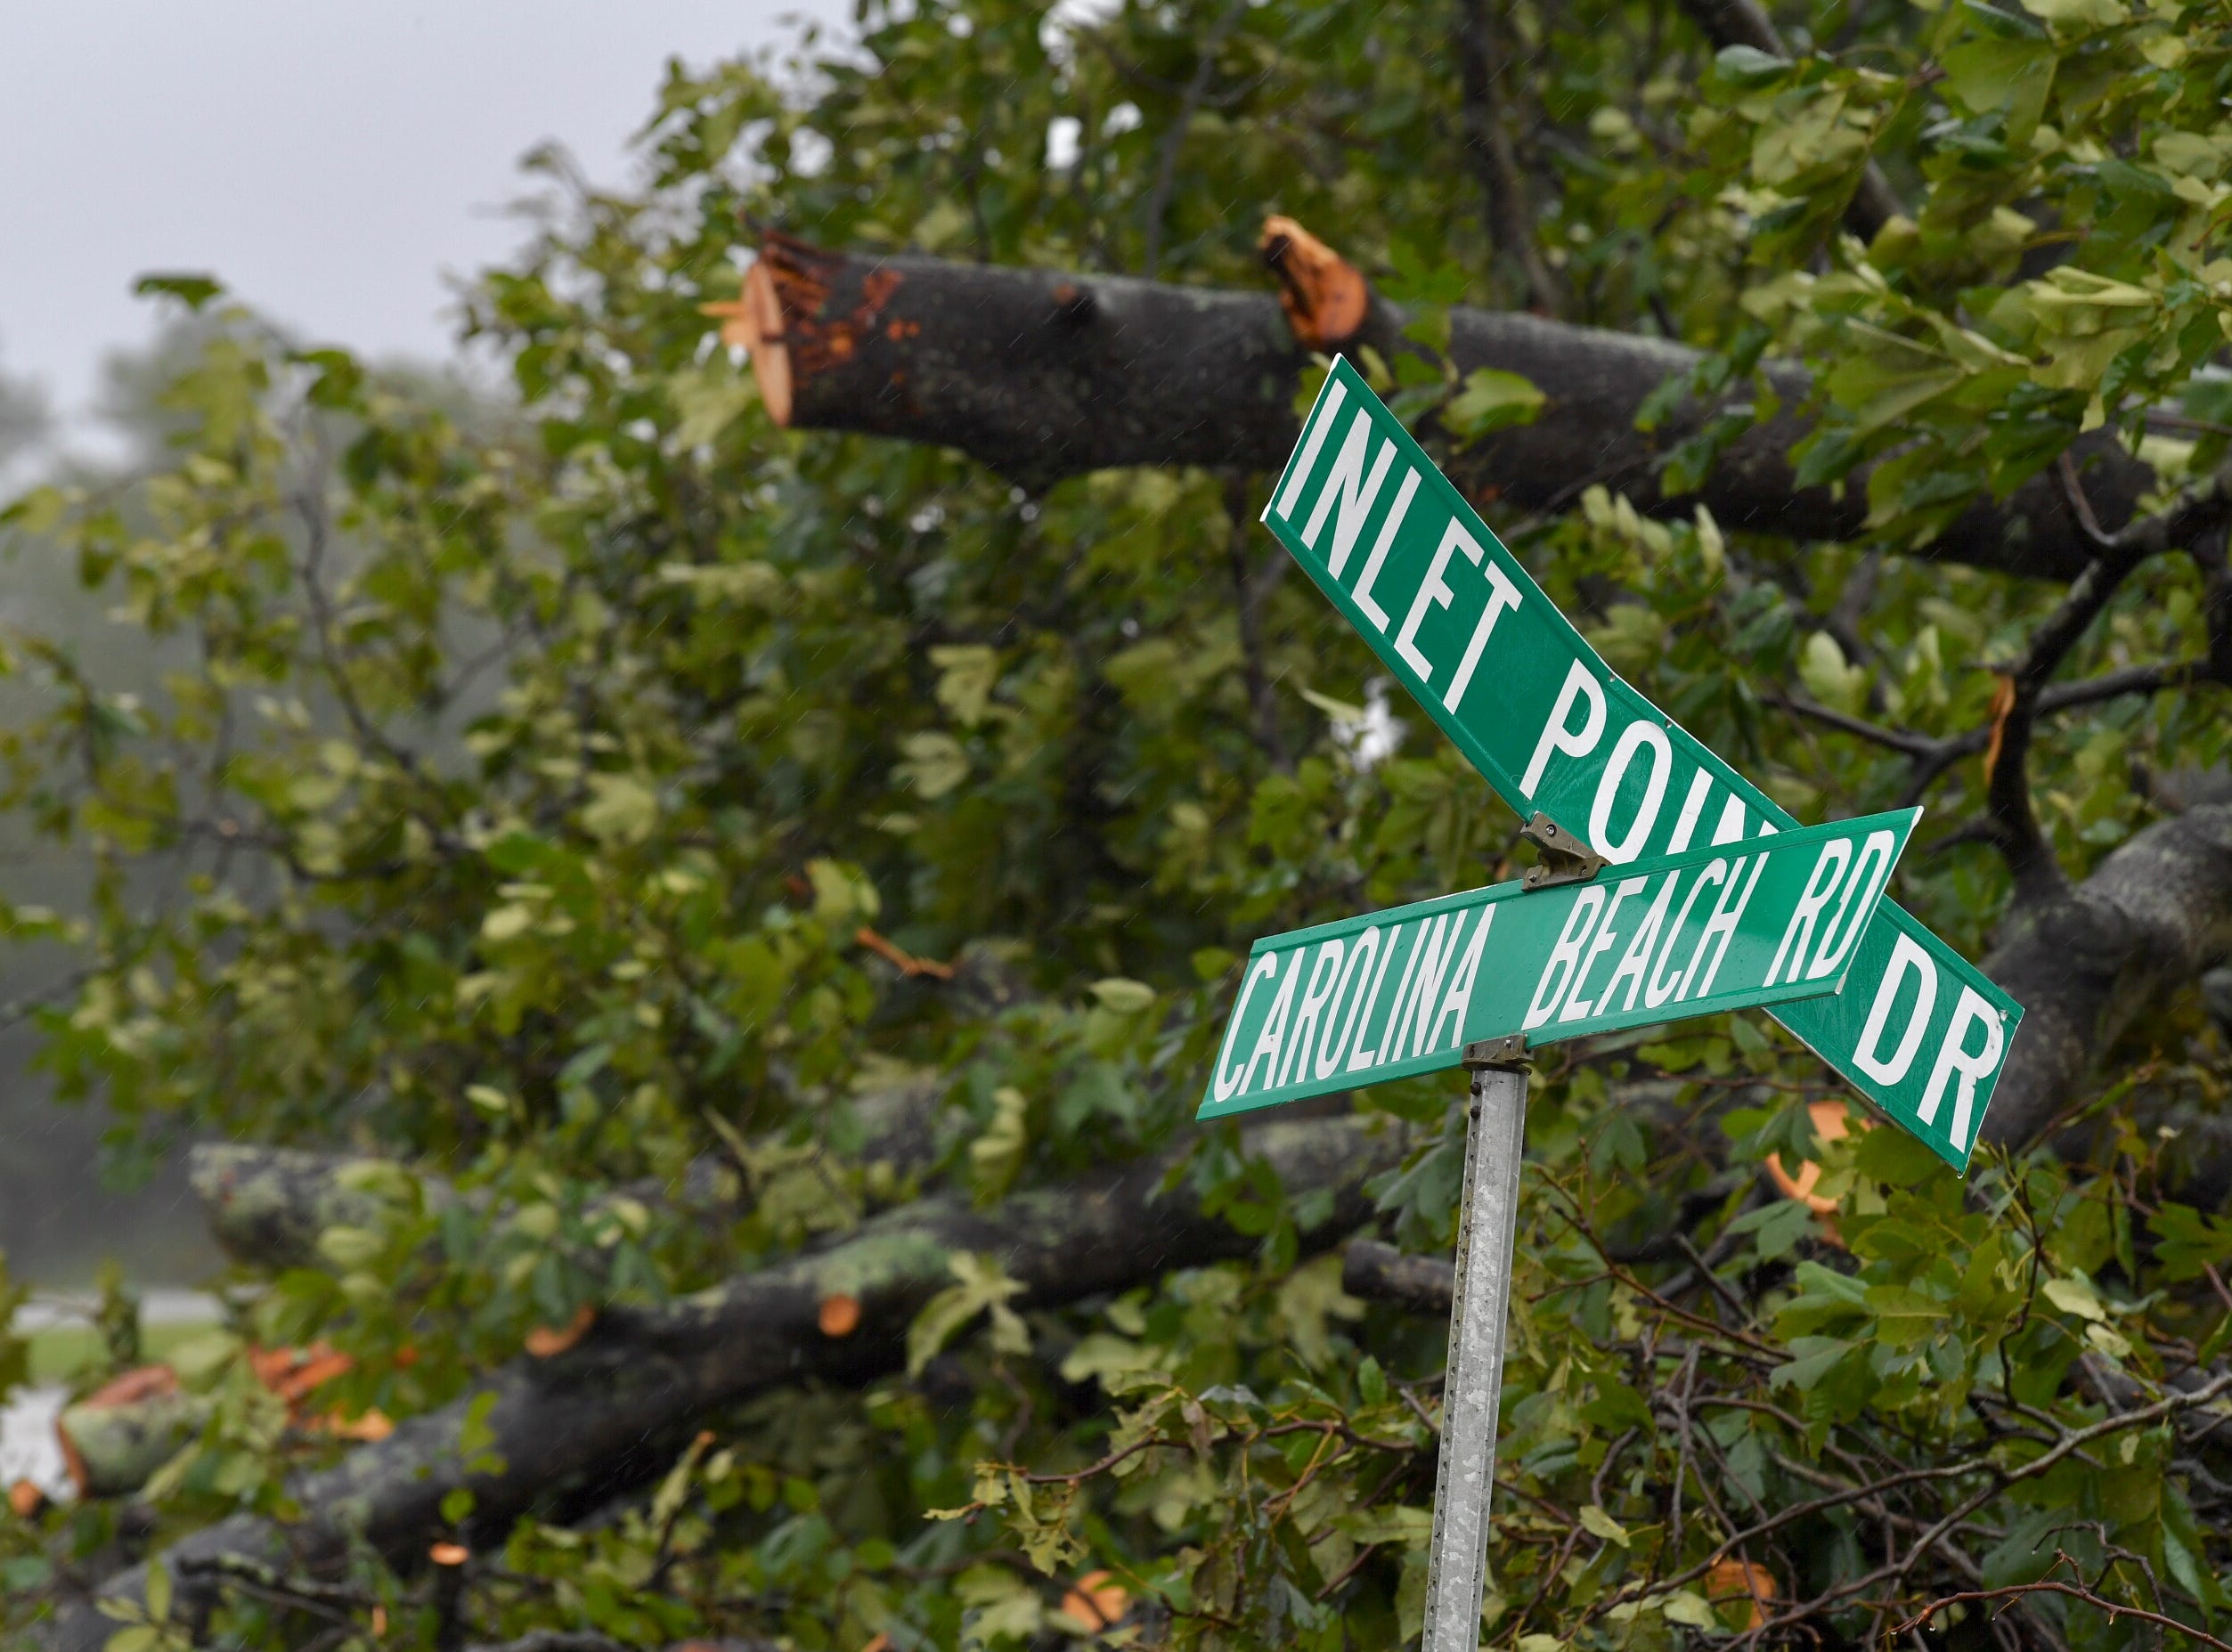 A street sign down near Carolina Beach in Wilmington, N.C. on Saturday, Sept. 15, 2018.